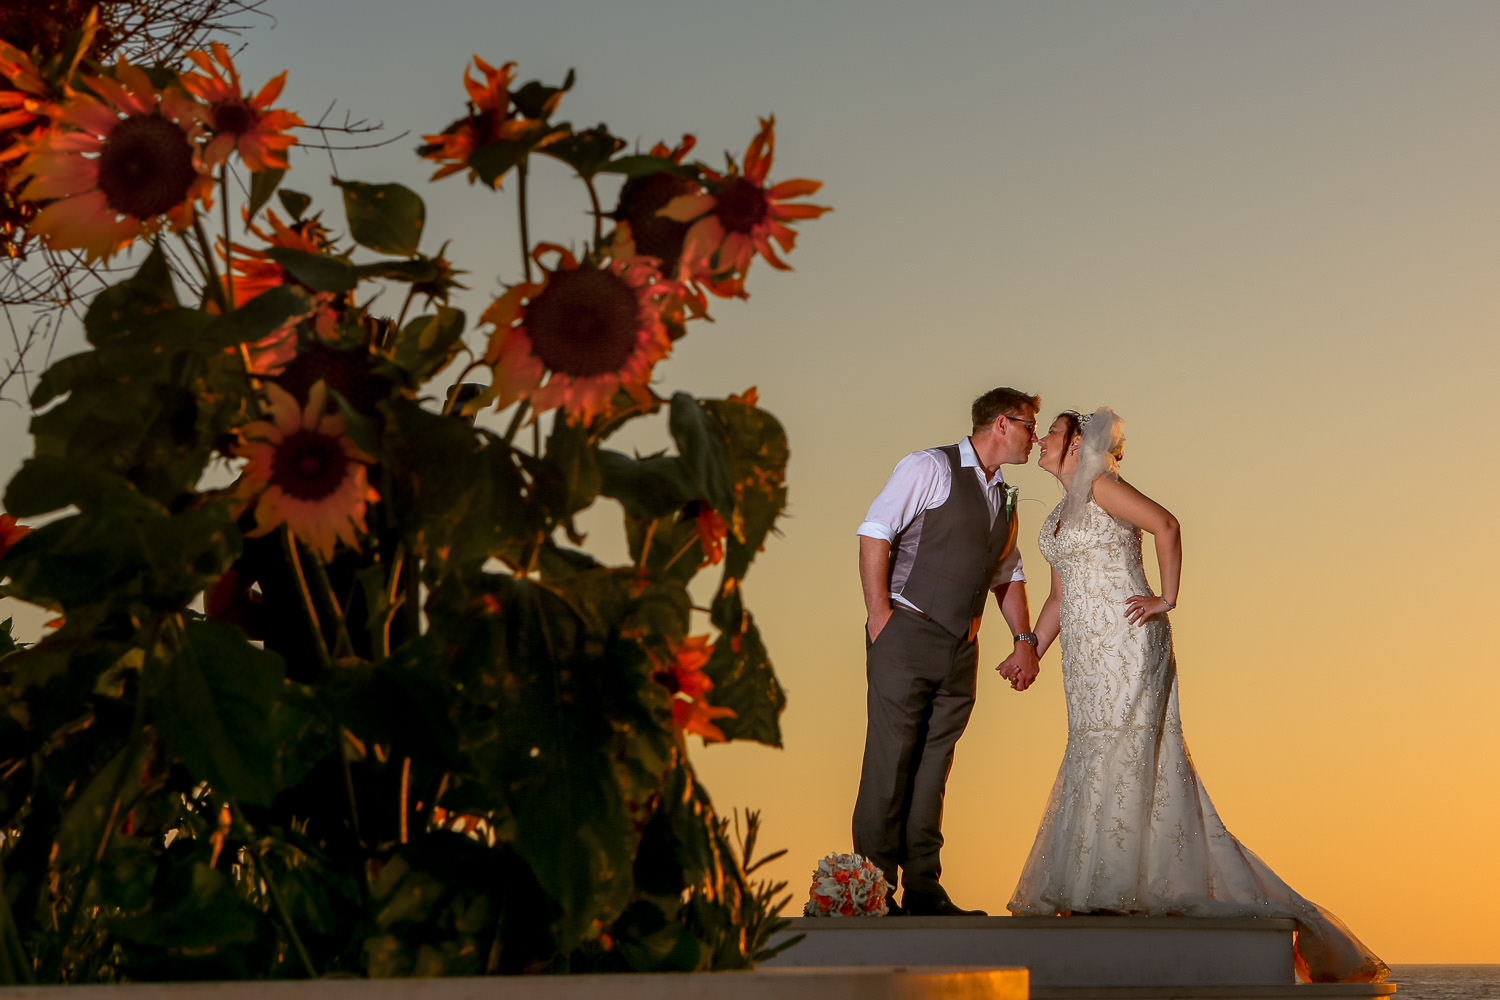 Alexander The Great Beach Hotel wedding photography. Bride and groom kissing at sunset next to sunflowers